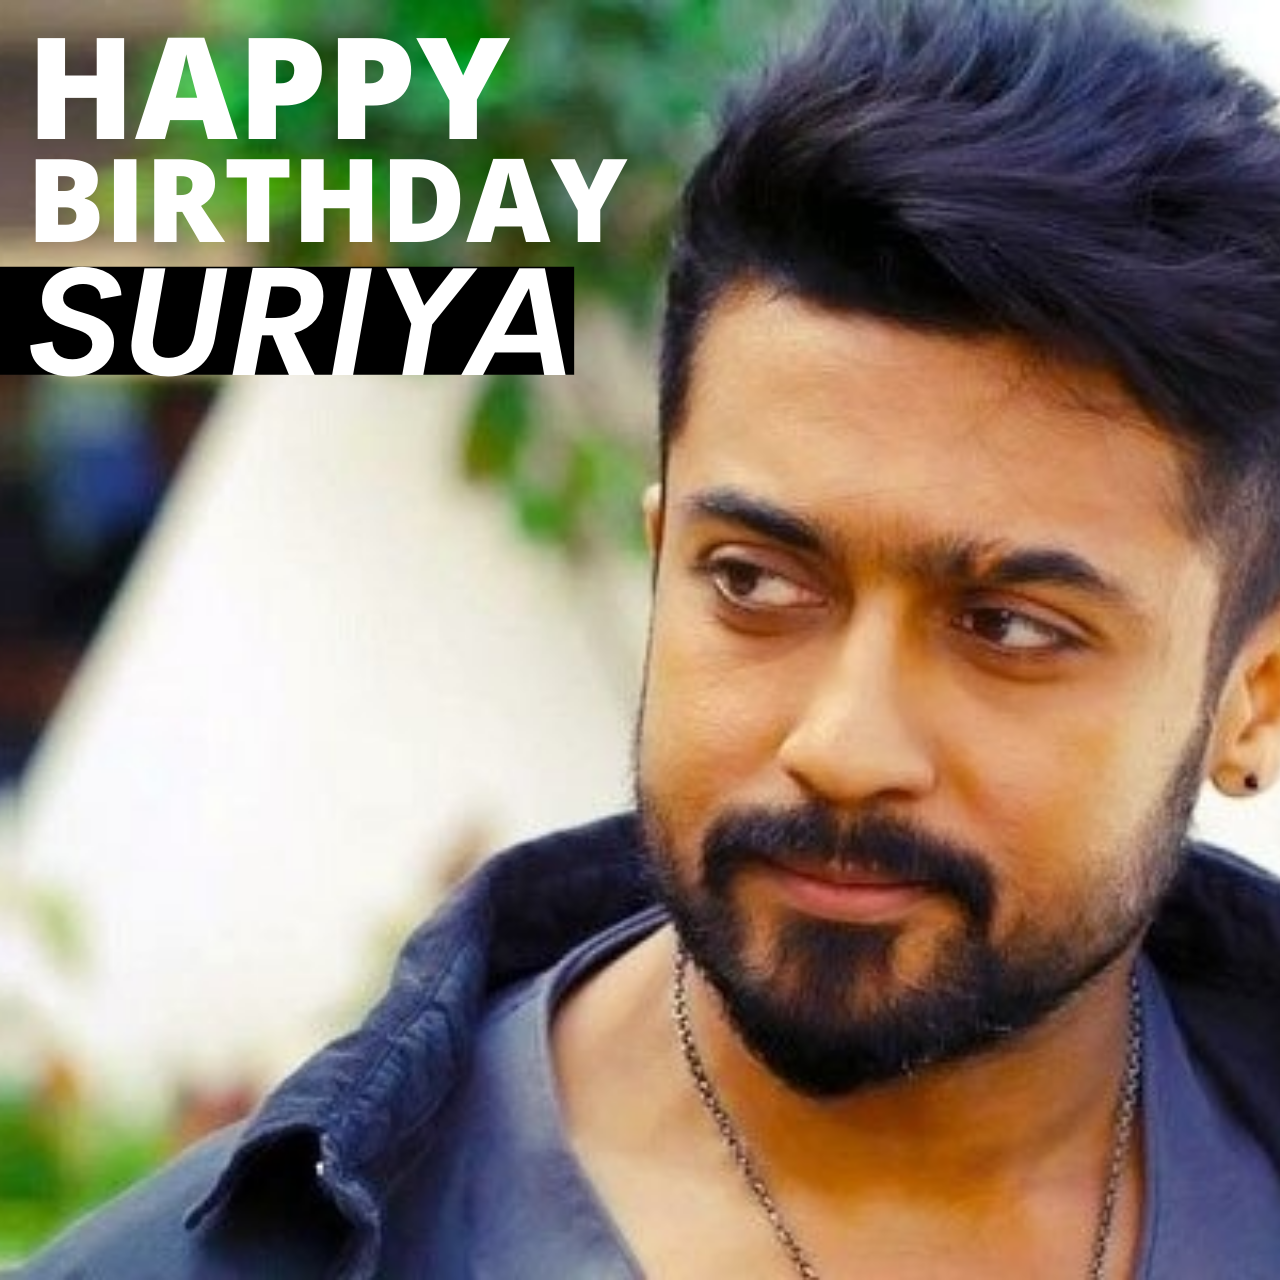 Happy Birthday Suriya Wishes, Quotes, Images, Messages, Poster, Status, Banner, and WhatsApp Status Video to Download